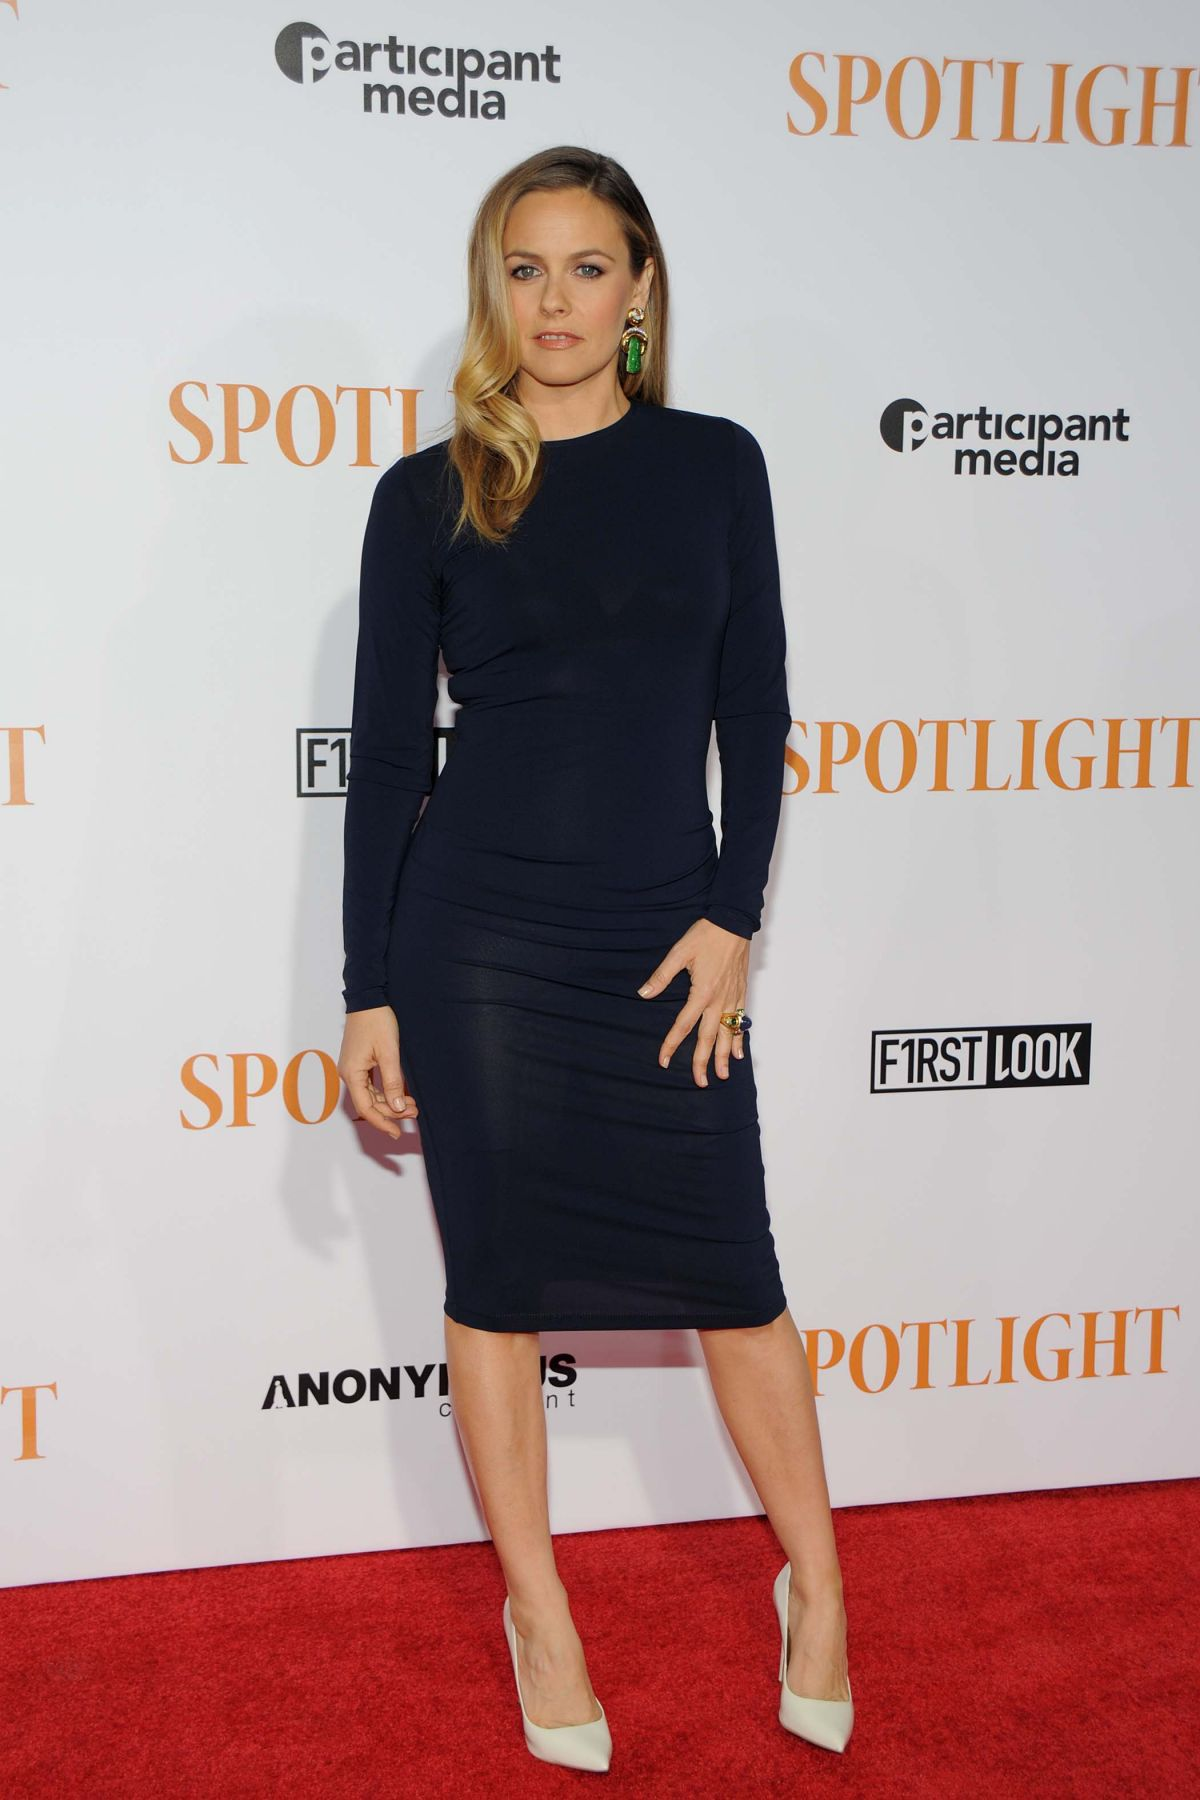 alicia-silverstone-at-spotlight-premiere-in-new-york-10-27-2015_3.jpg